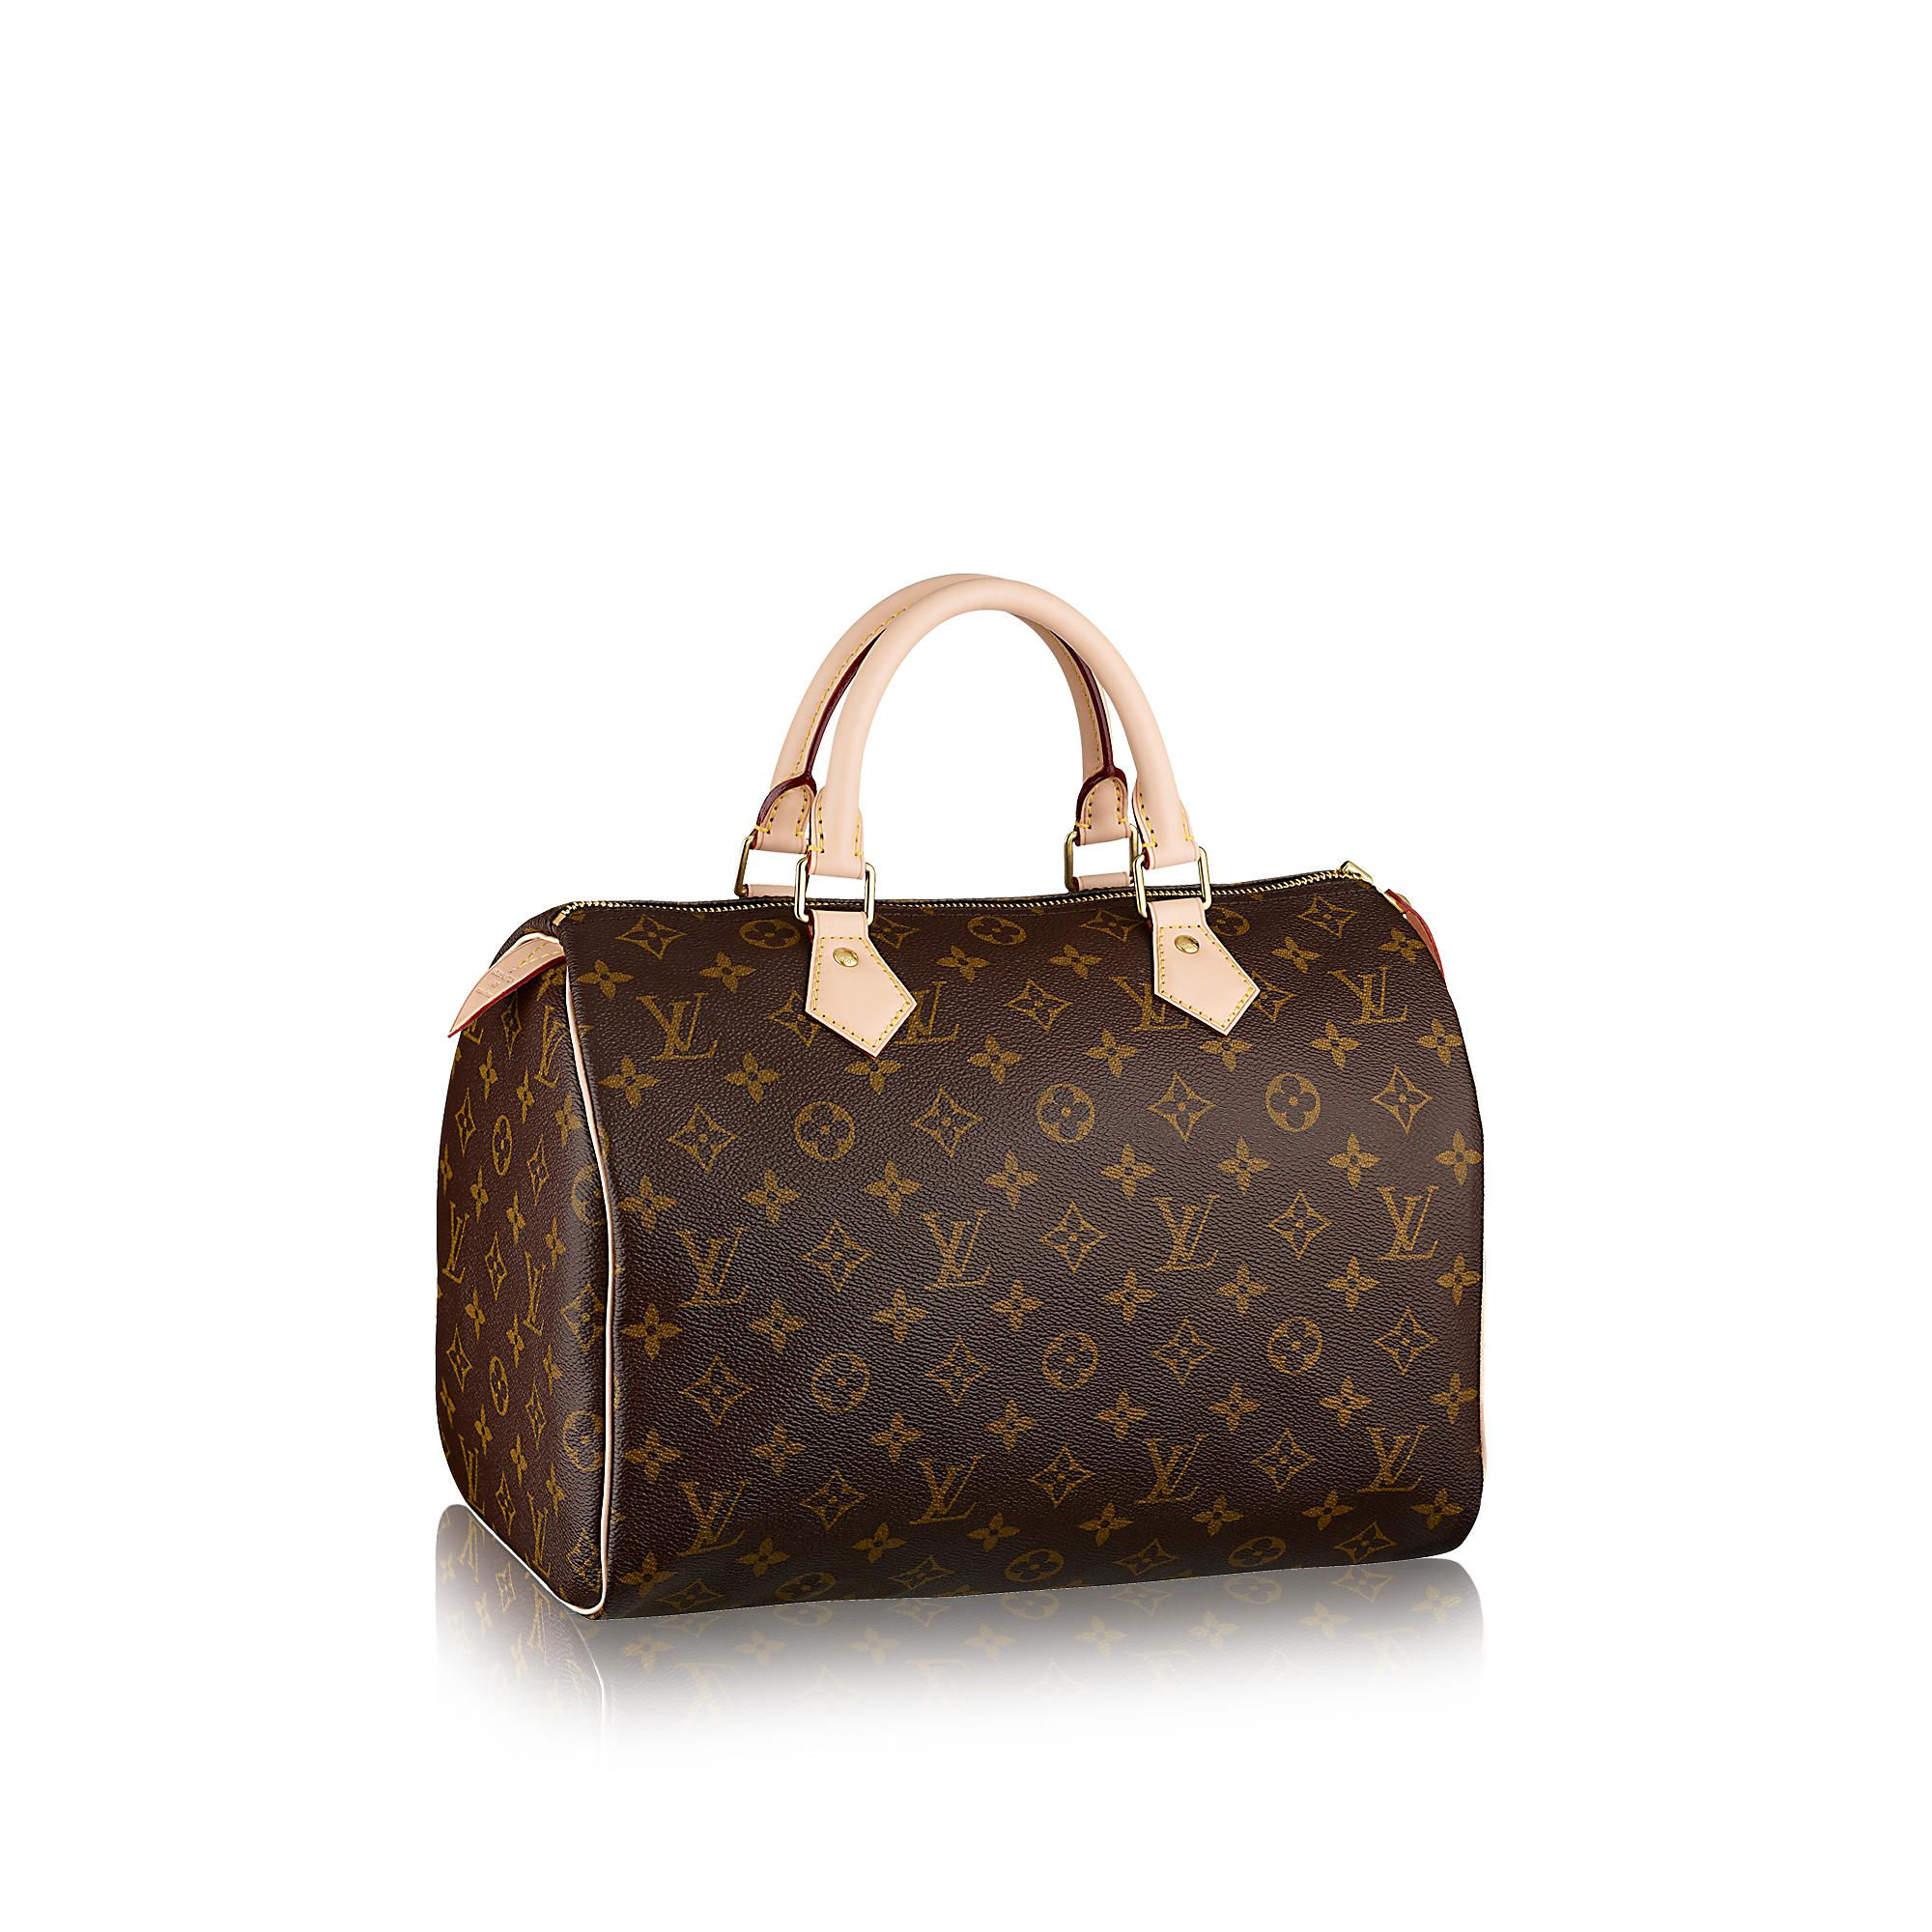 key:product_page_share_discover_product Speedy 30 via Louis Vuitton